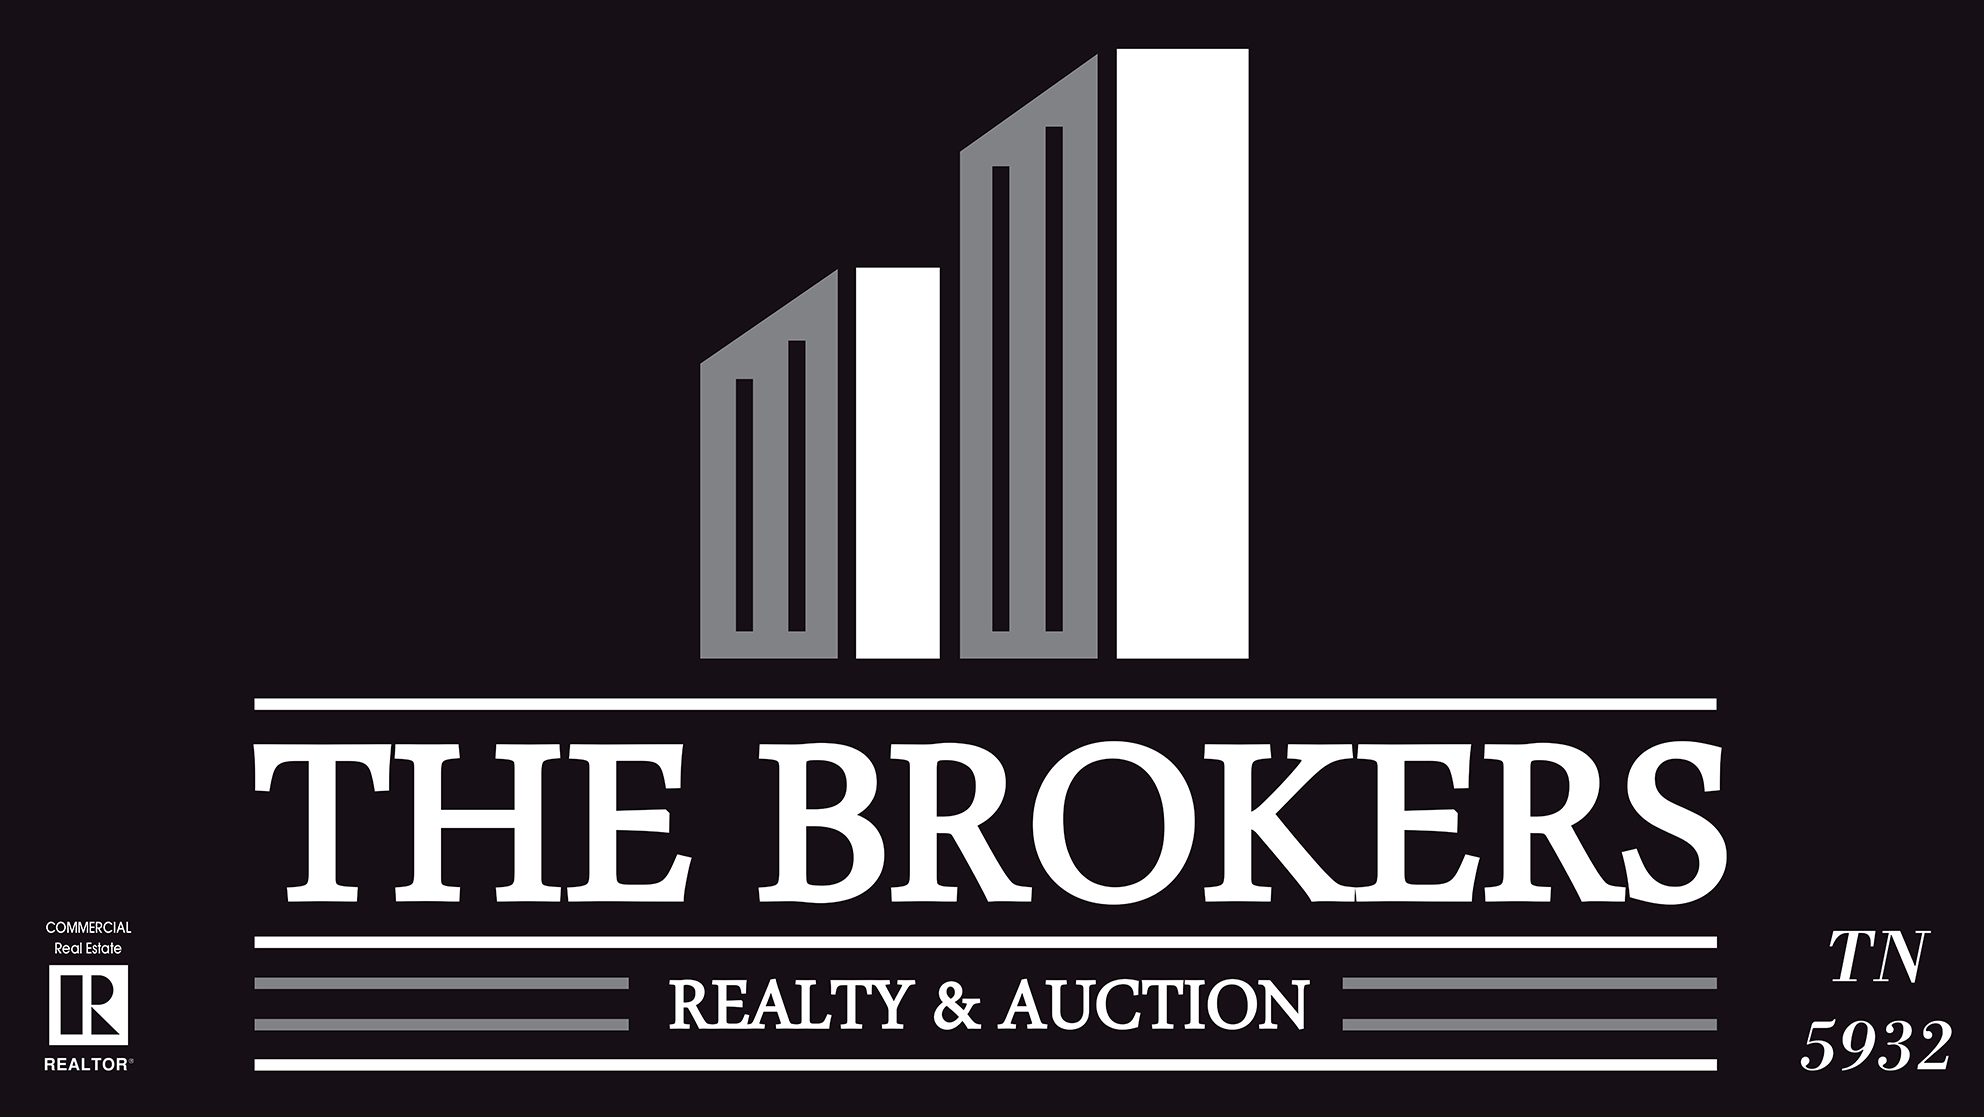 The Brokers Realty & Auction Inc